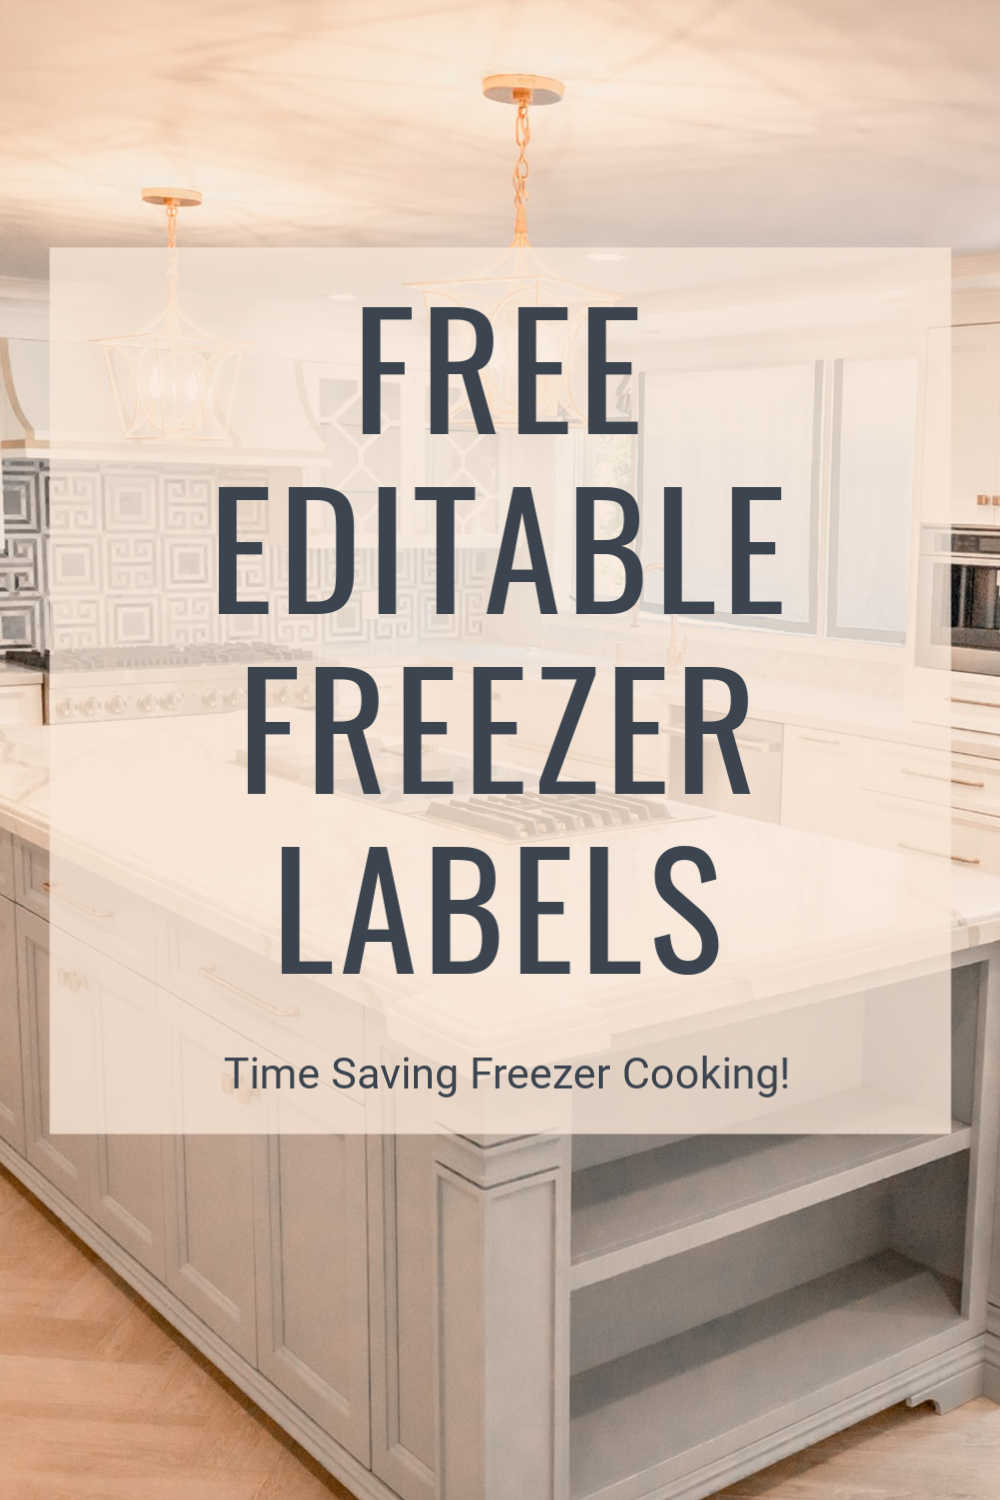 Free editable Freezer labels to help your meal prep! Use moisture resistant labels and print the instructions for your freezer meal efforts. Never lose track of what you are making! #FreezerCooking #MealPrep #EditableLabels